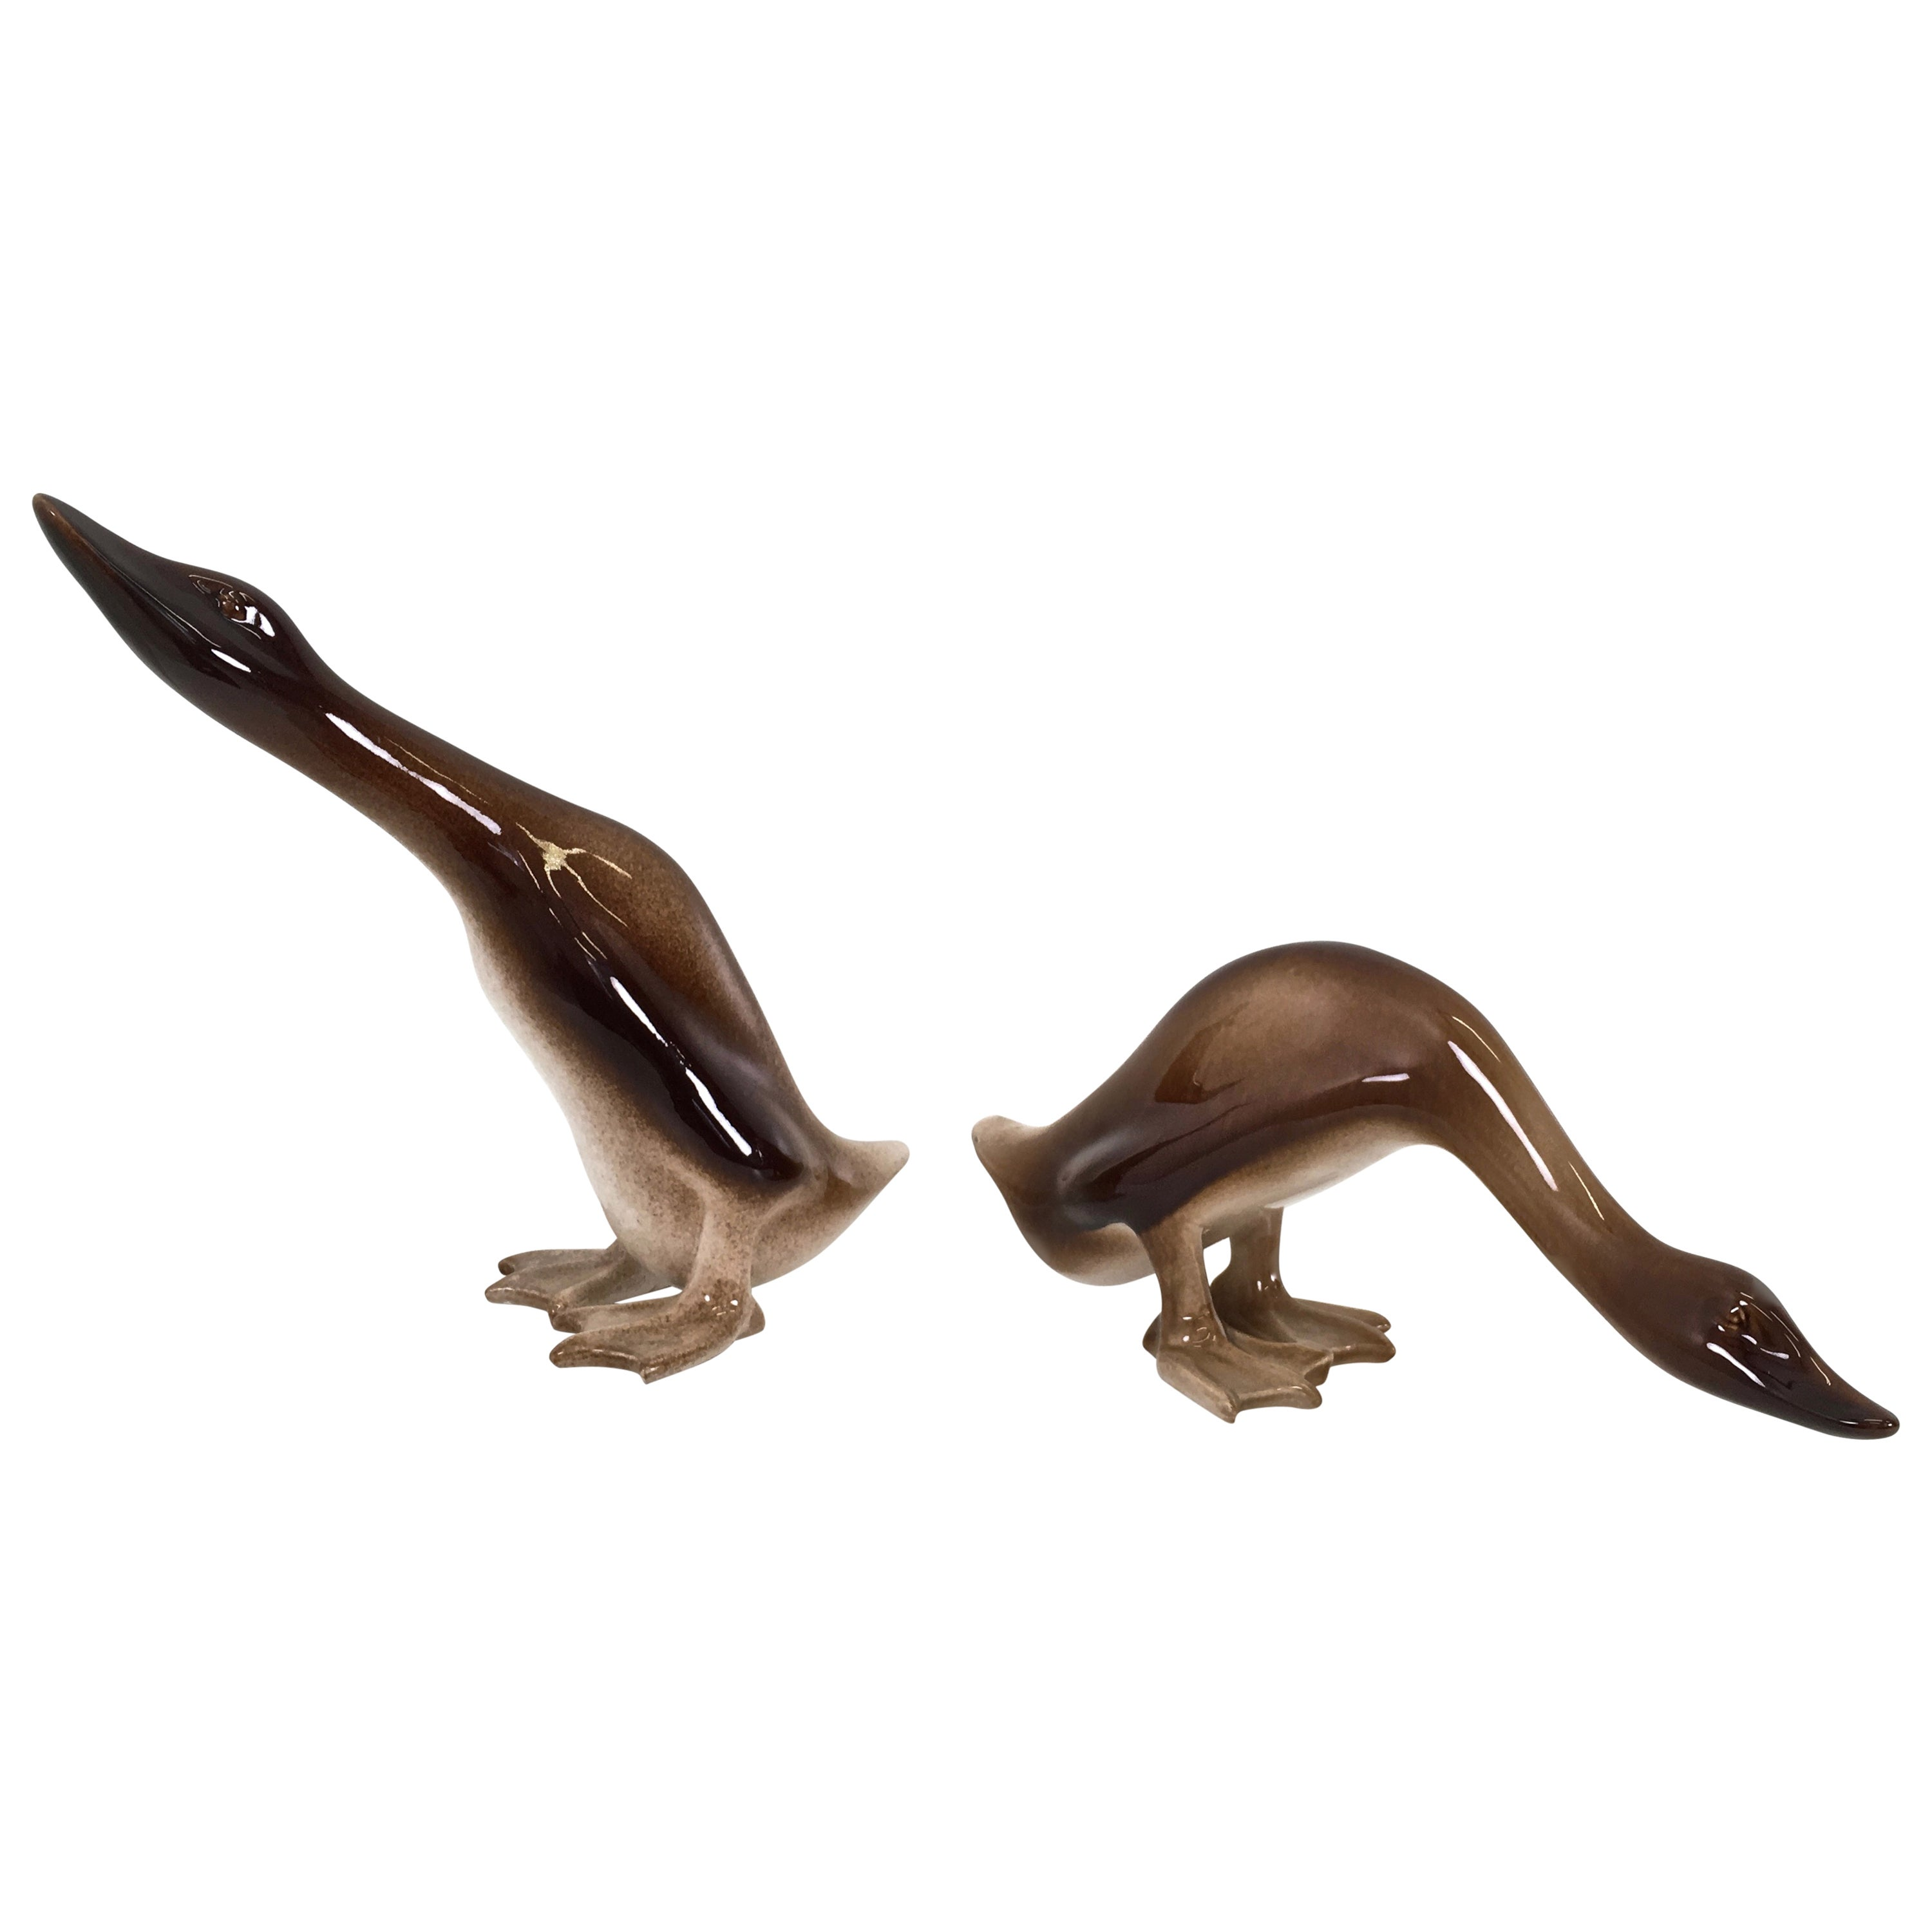 Pair of Ducks Statues by Ugo Zaccagnini, Italy, 1950s